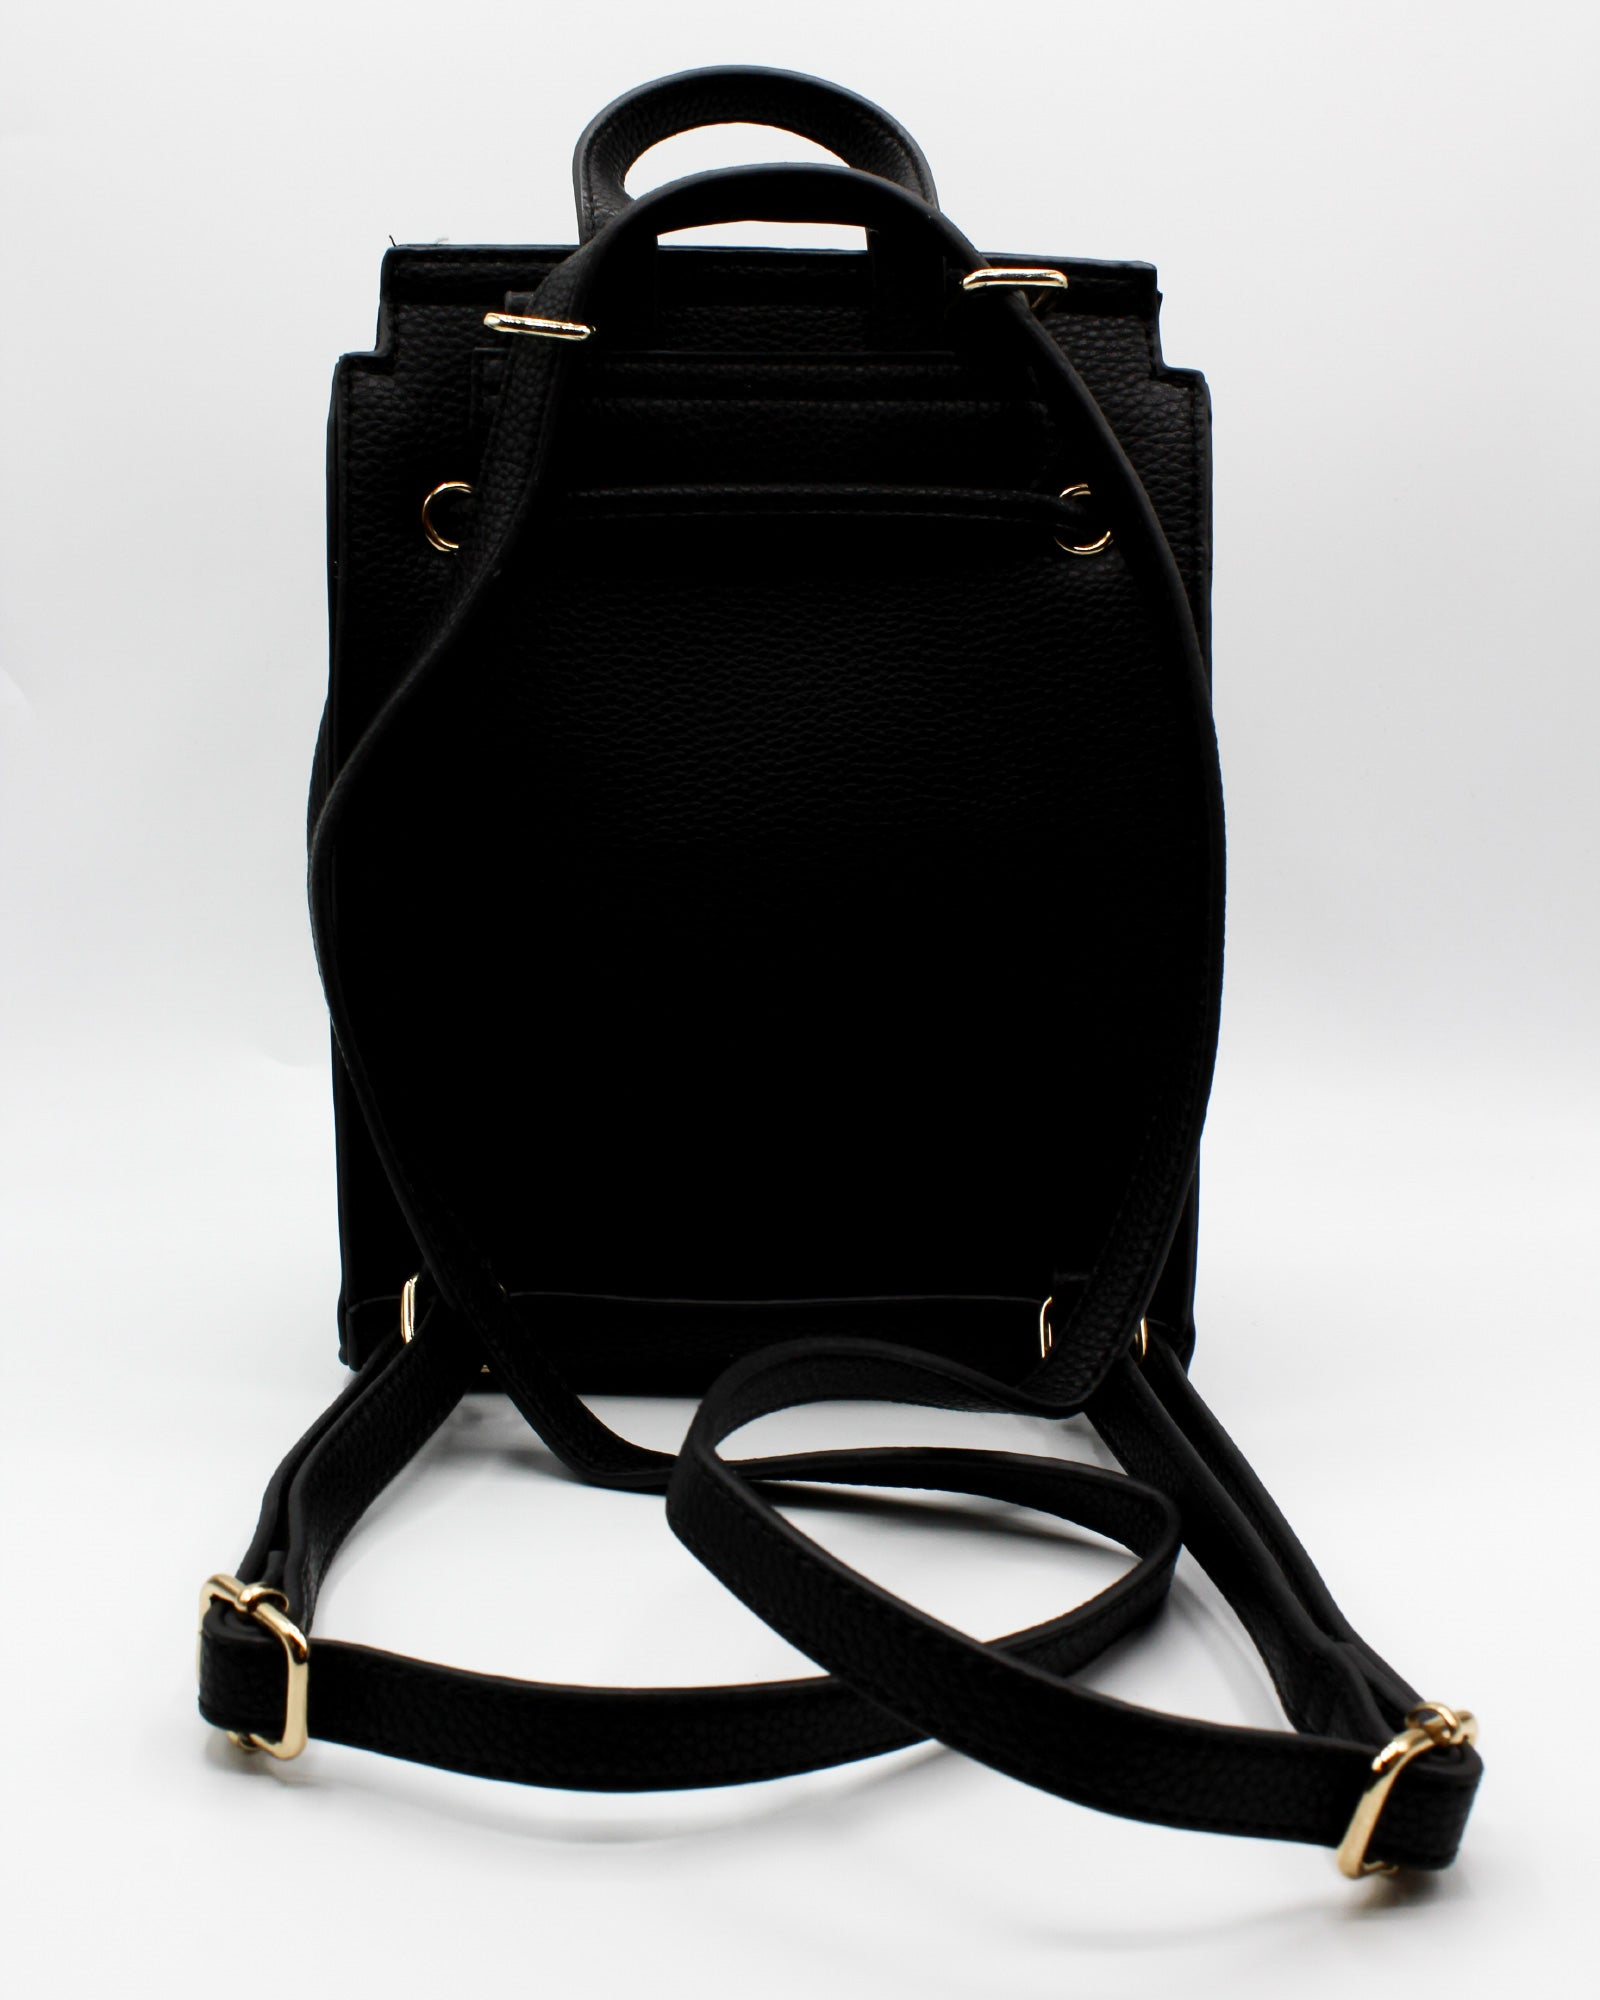 Where to Next Mini Black Backpack - Shop Q